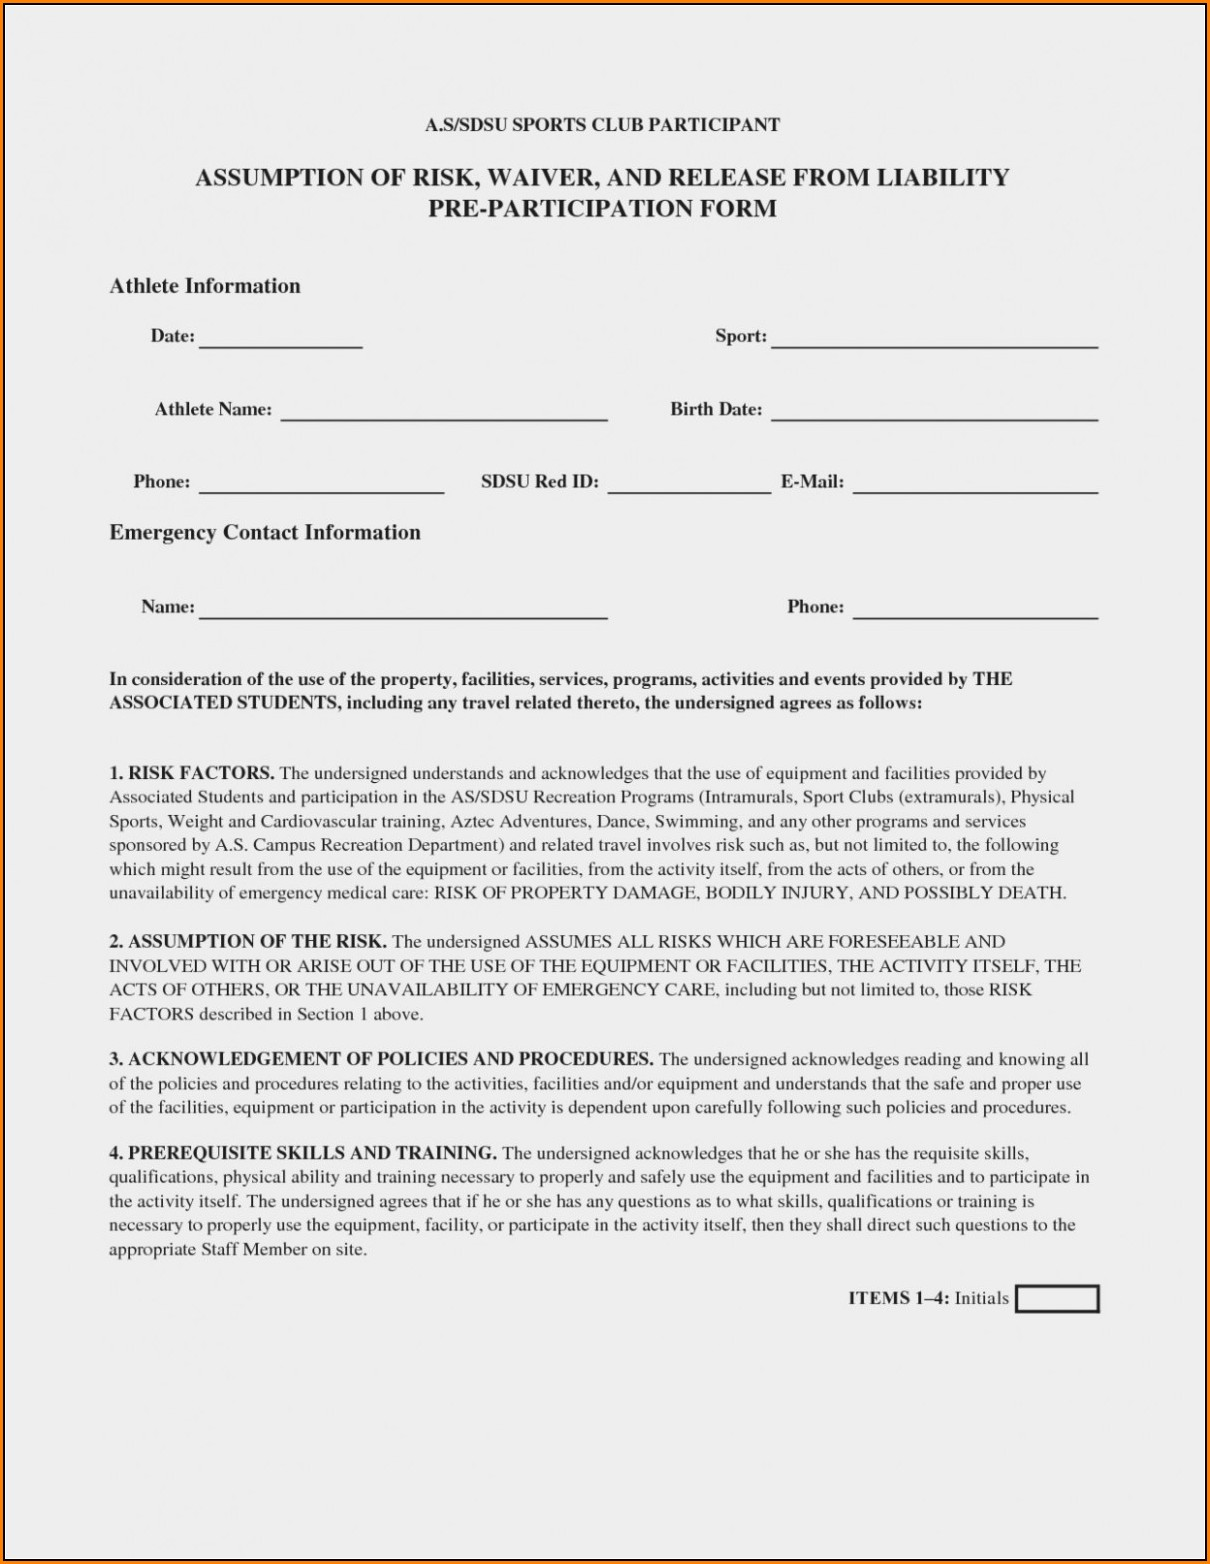 General Liability Acord Form 125 - Form : Resume Examples ...